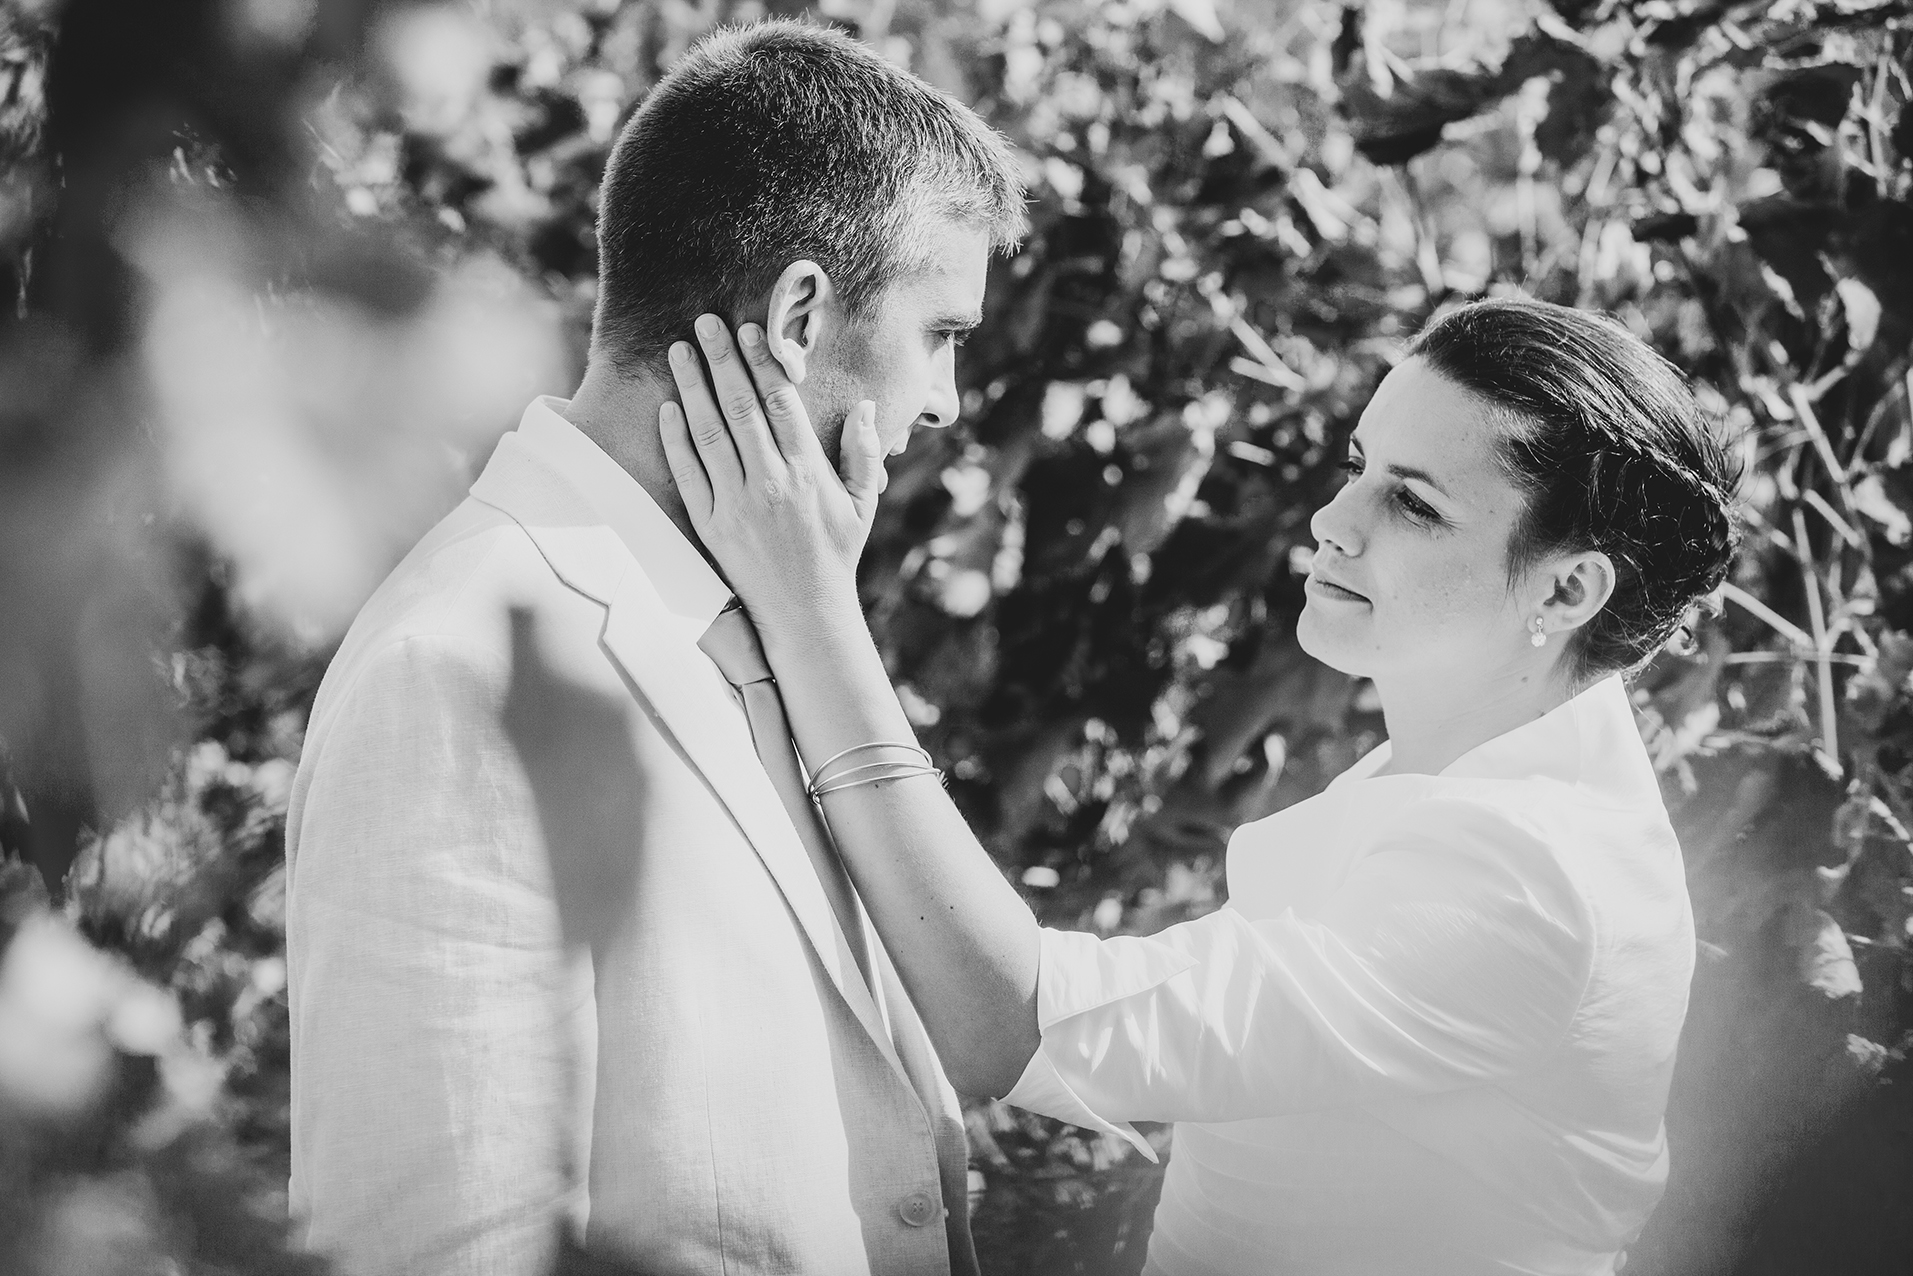 Gers evenement mariage Gem, yves senecal, photographe l isle jourdain, photographe gers, photographe toulouse, portrait gers, mariage gers, gem, auch mariage, prestataires gers pour mariage